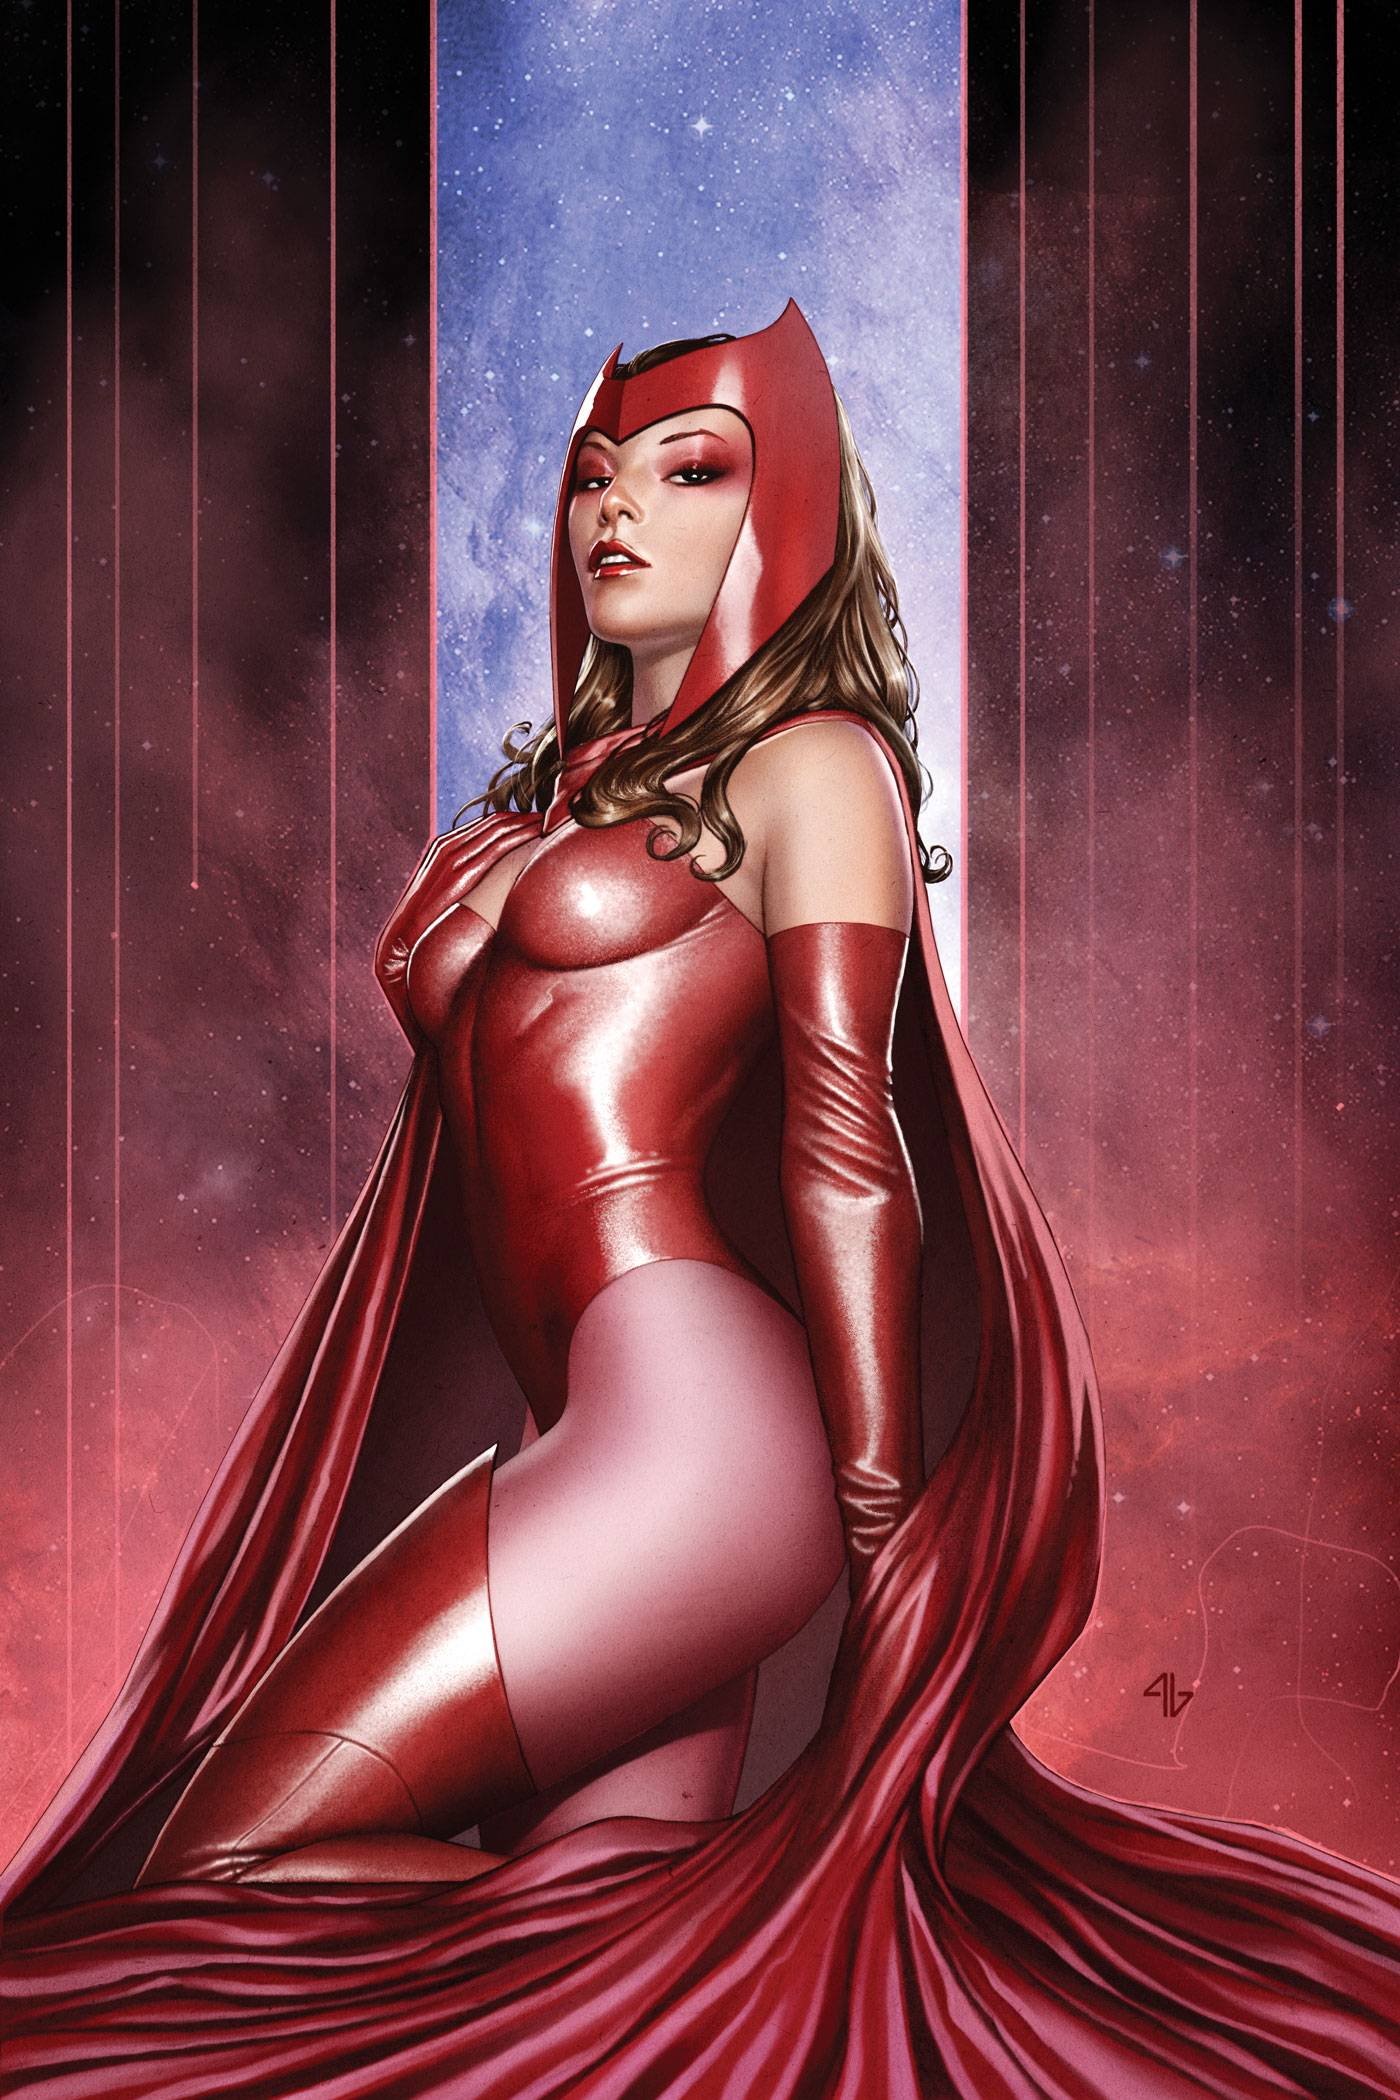 Datei:Scarlet witch.jpg